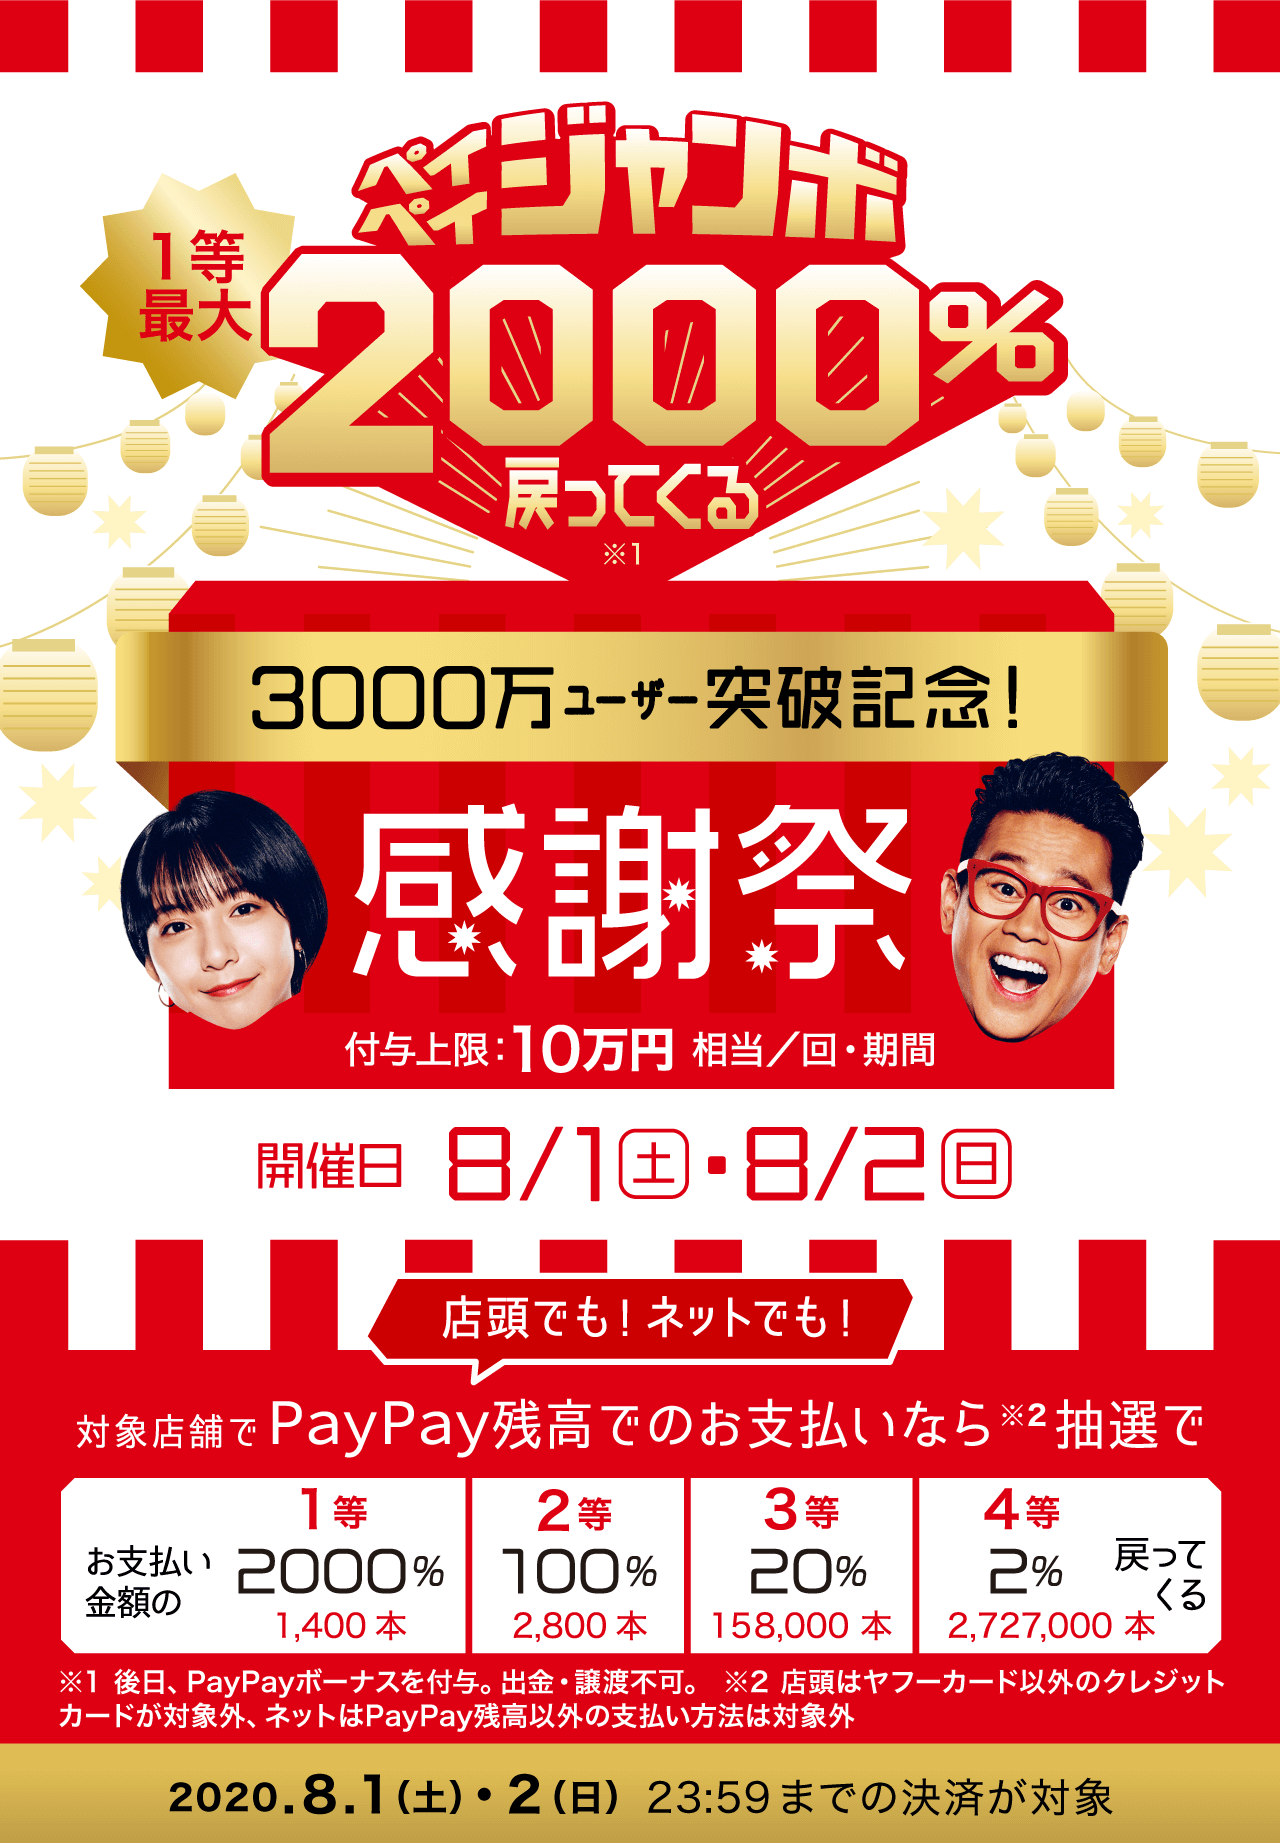 https://image.paypay.ne.jp/page/event/anniversary-20200801/images/img_mv_01.png